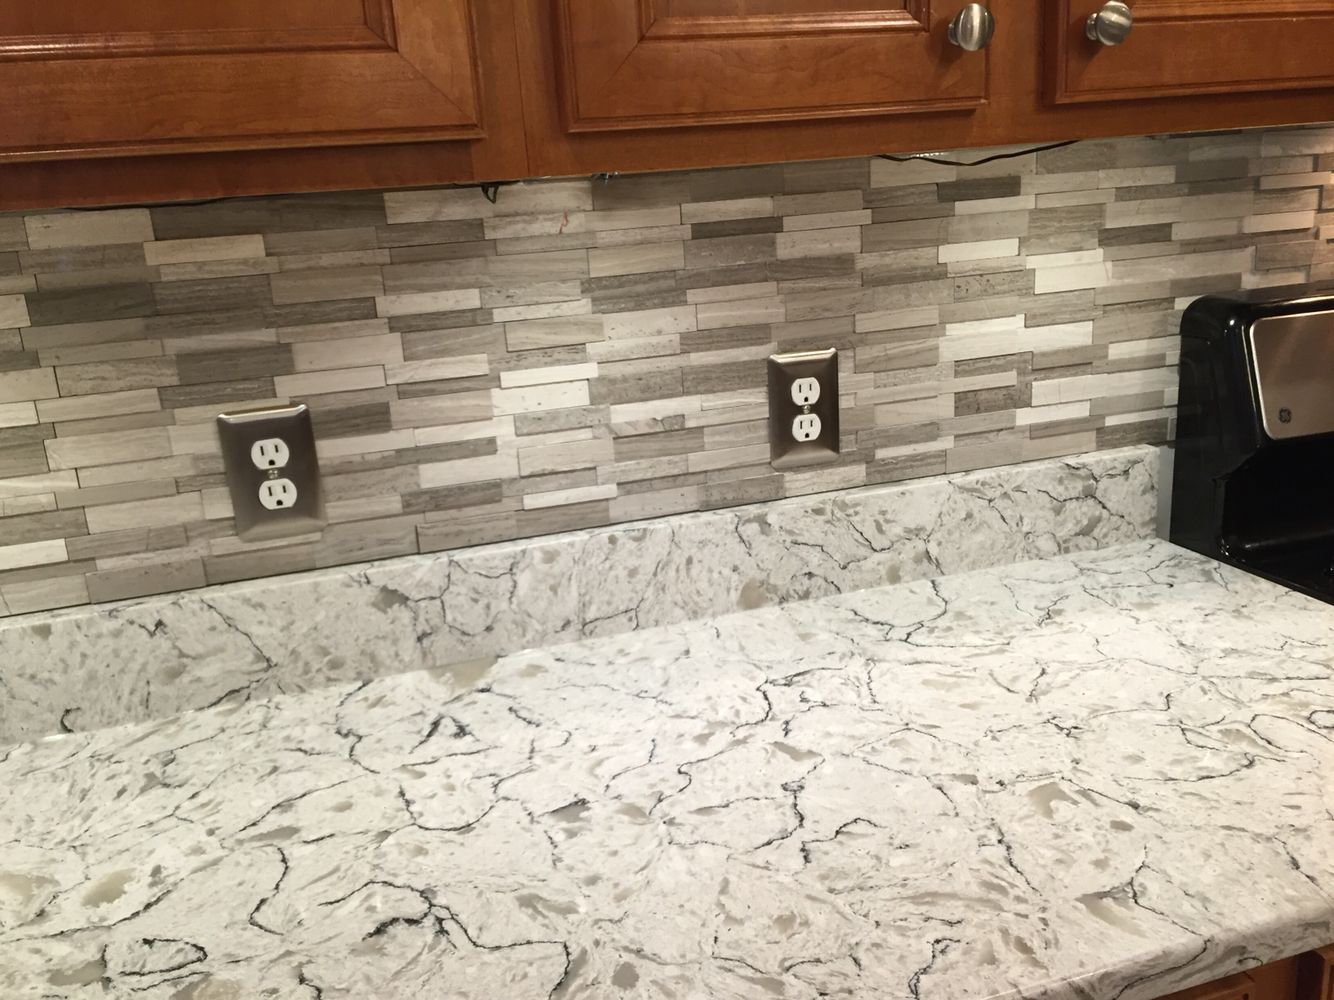 Gray Subway Mosaic Wall Tiles On Spring Valley Quartz Countertops.